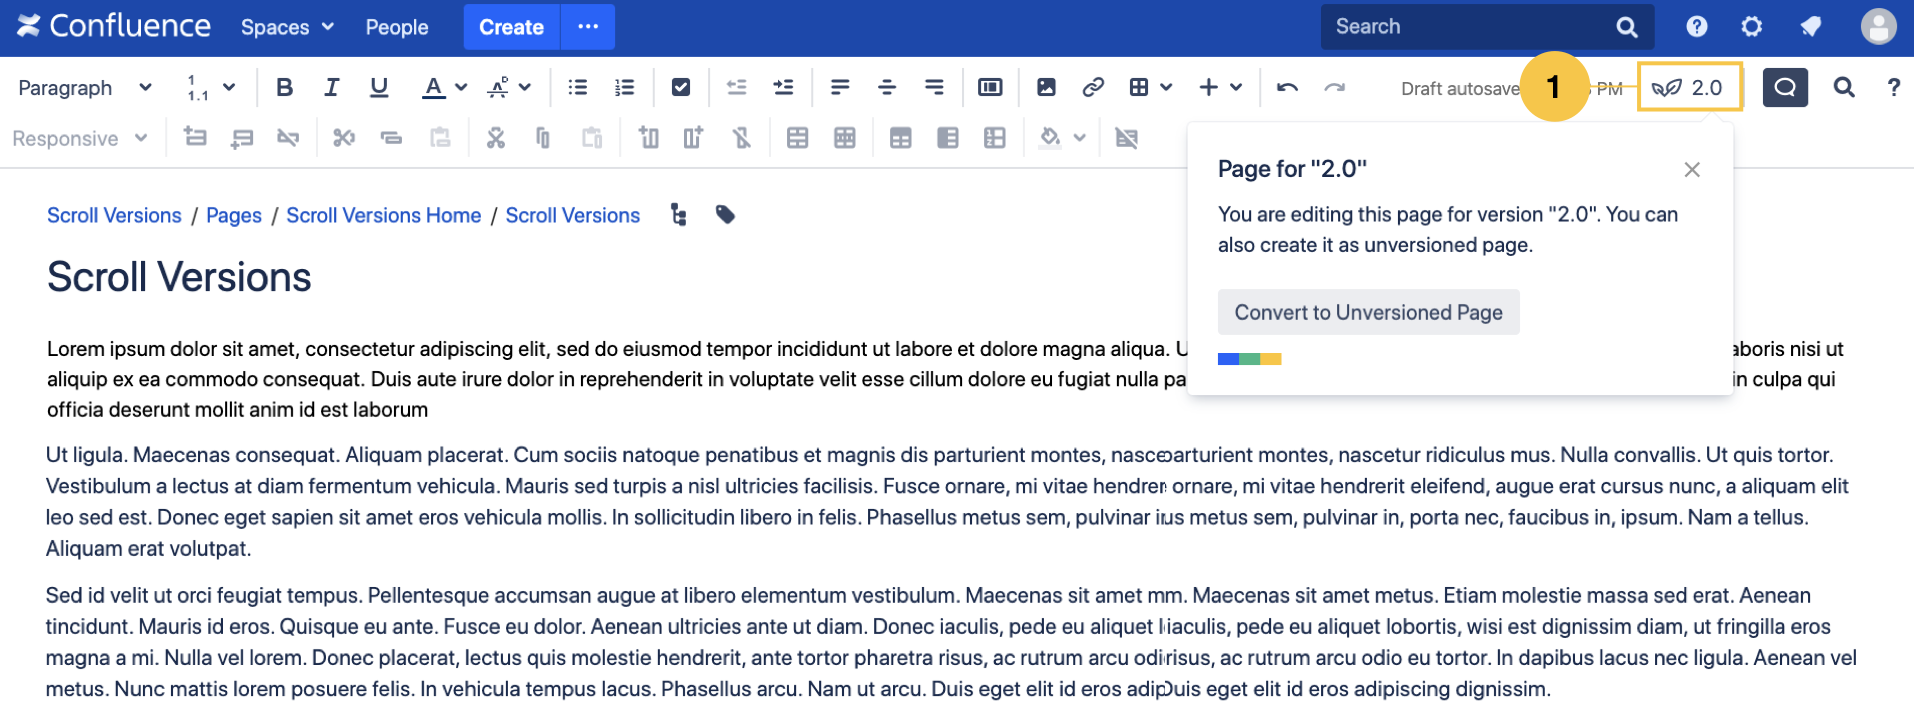 New Scroll Versions UI Elements in The Confluence Editor